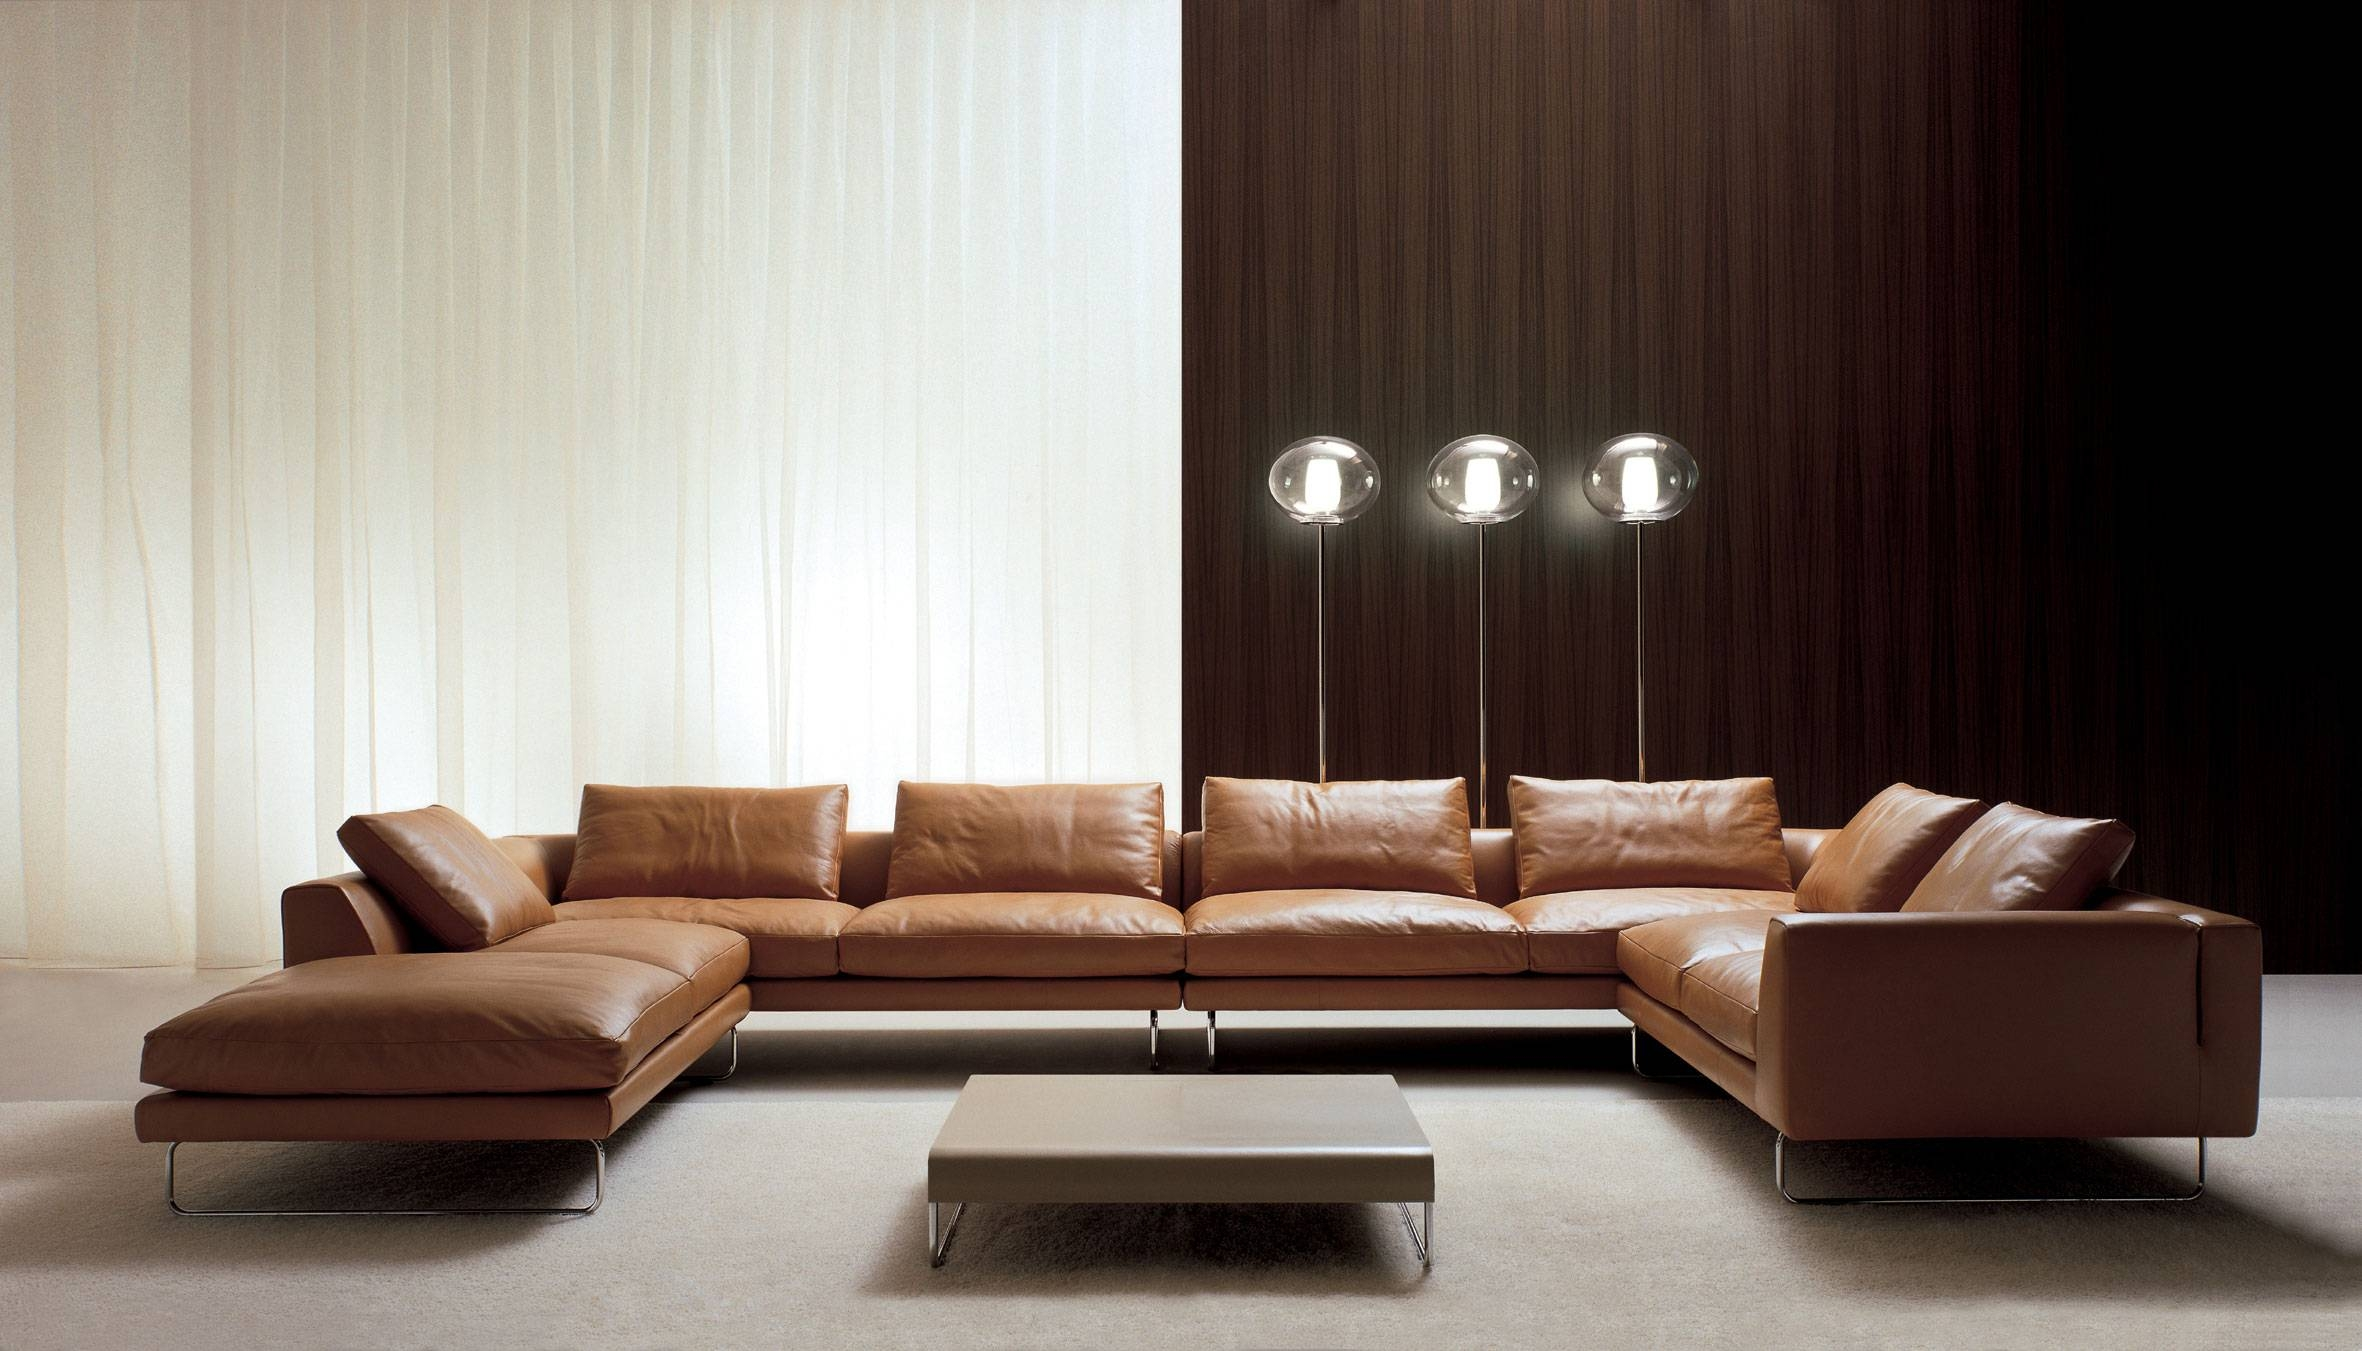 Outstanding Brown Leather U-Shaped Sectional Italian Sofa Design for U Shaped Leather Sectional Sofa (Image 20 of 25)